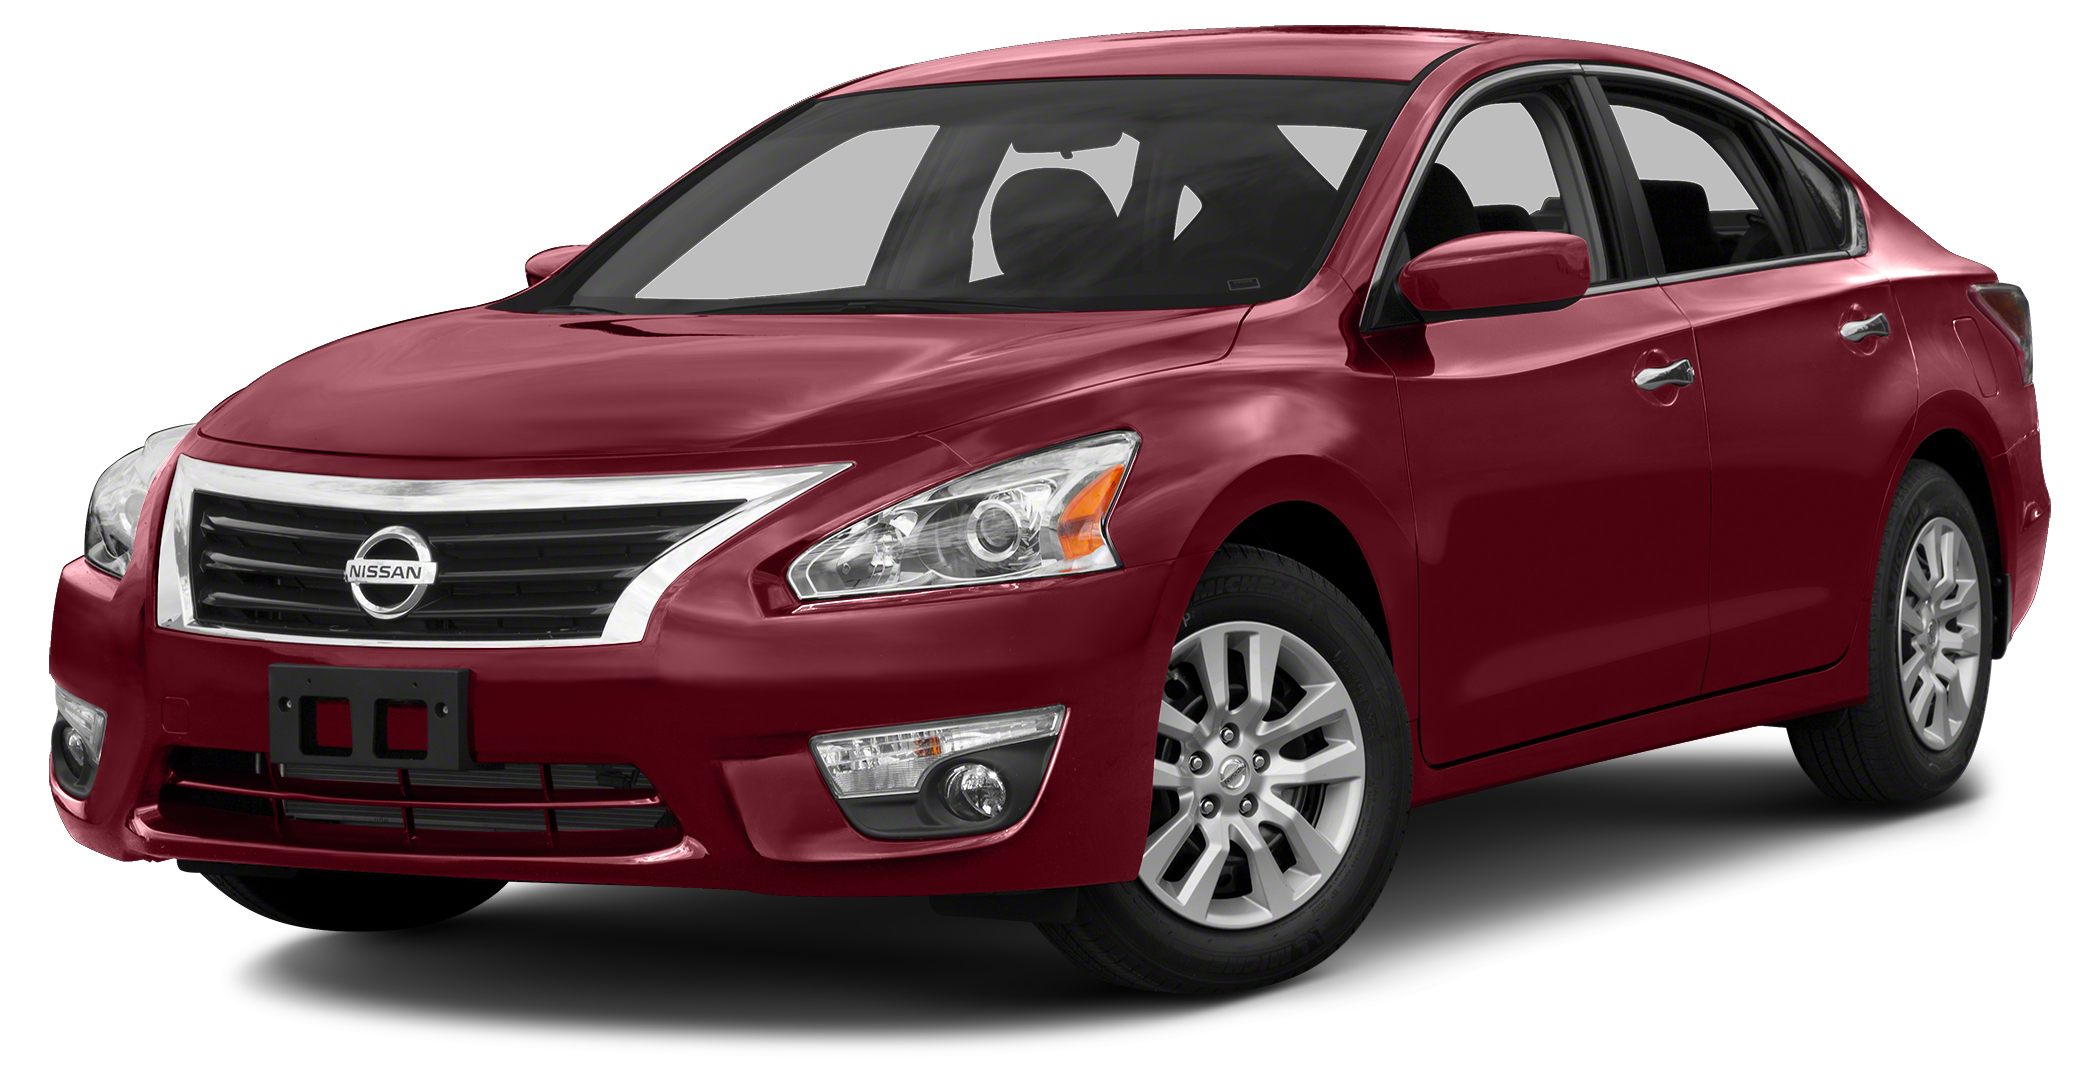 2013 Nissan Altima 25 S Visit Best Auto Group online at bronxbestautocom to see more pictures of